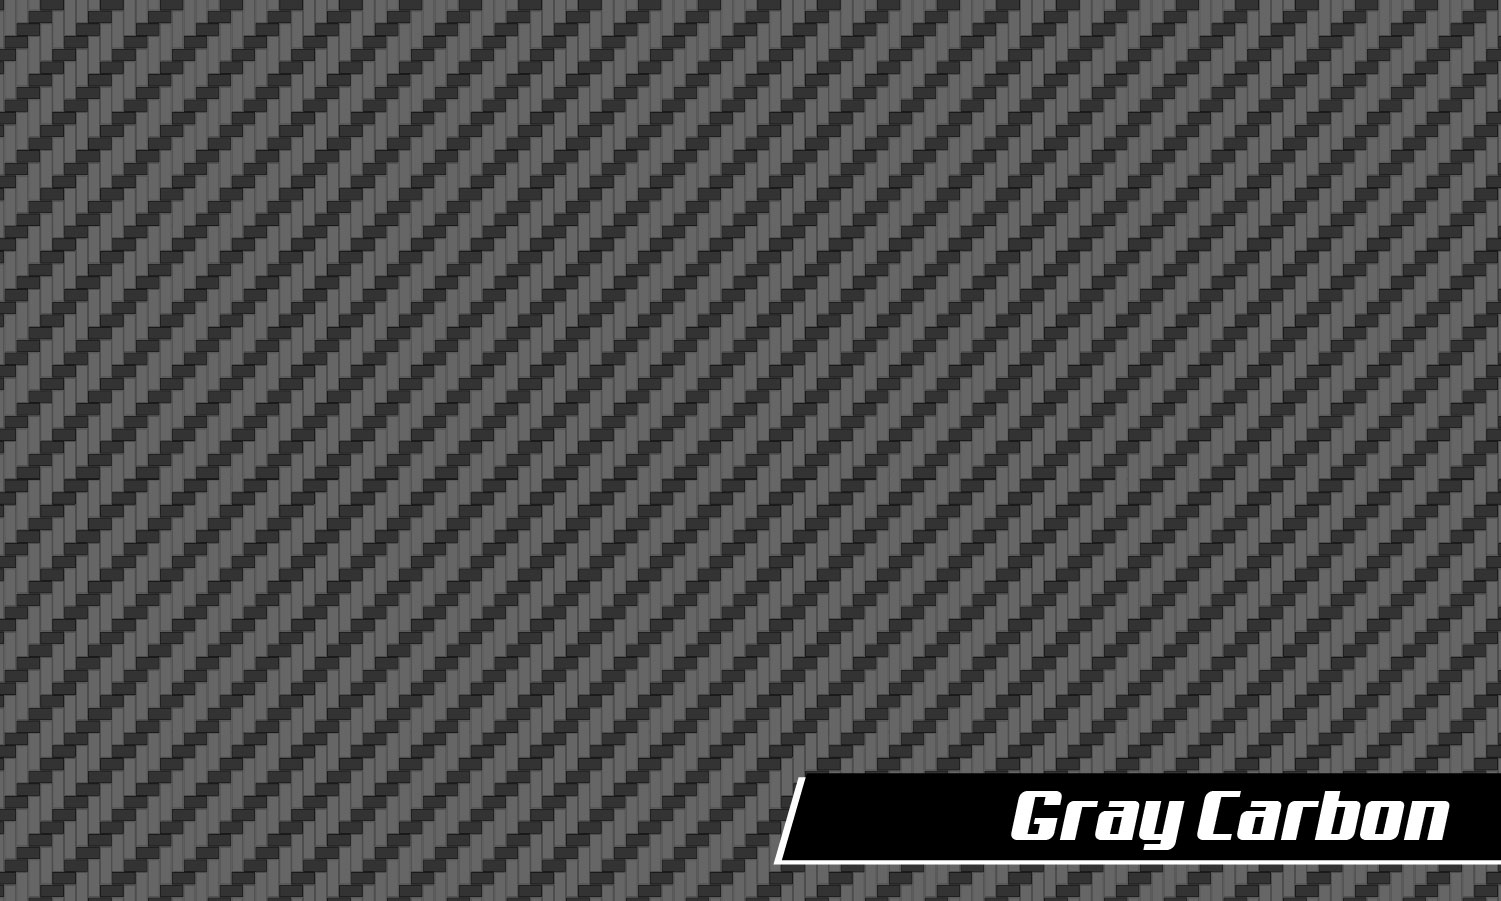 Gray Carbon